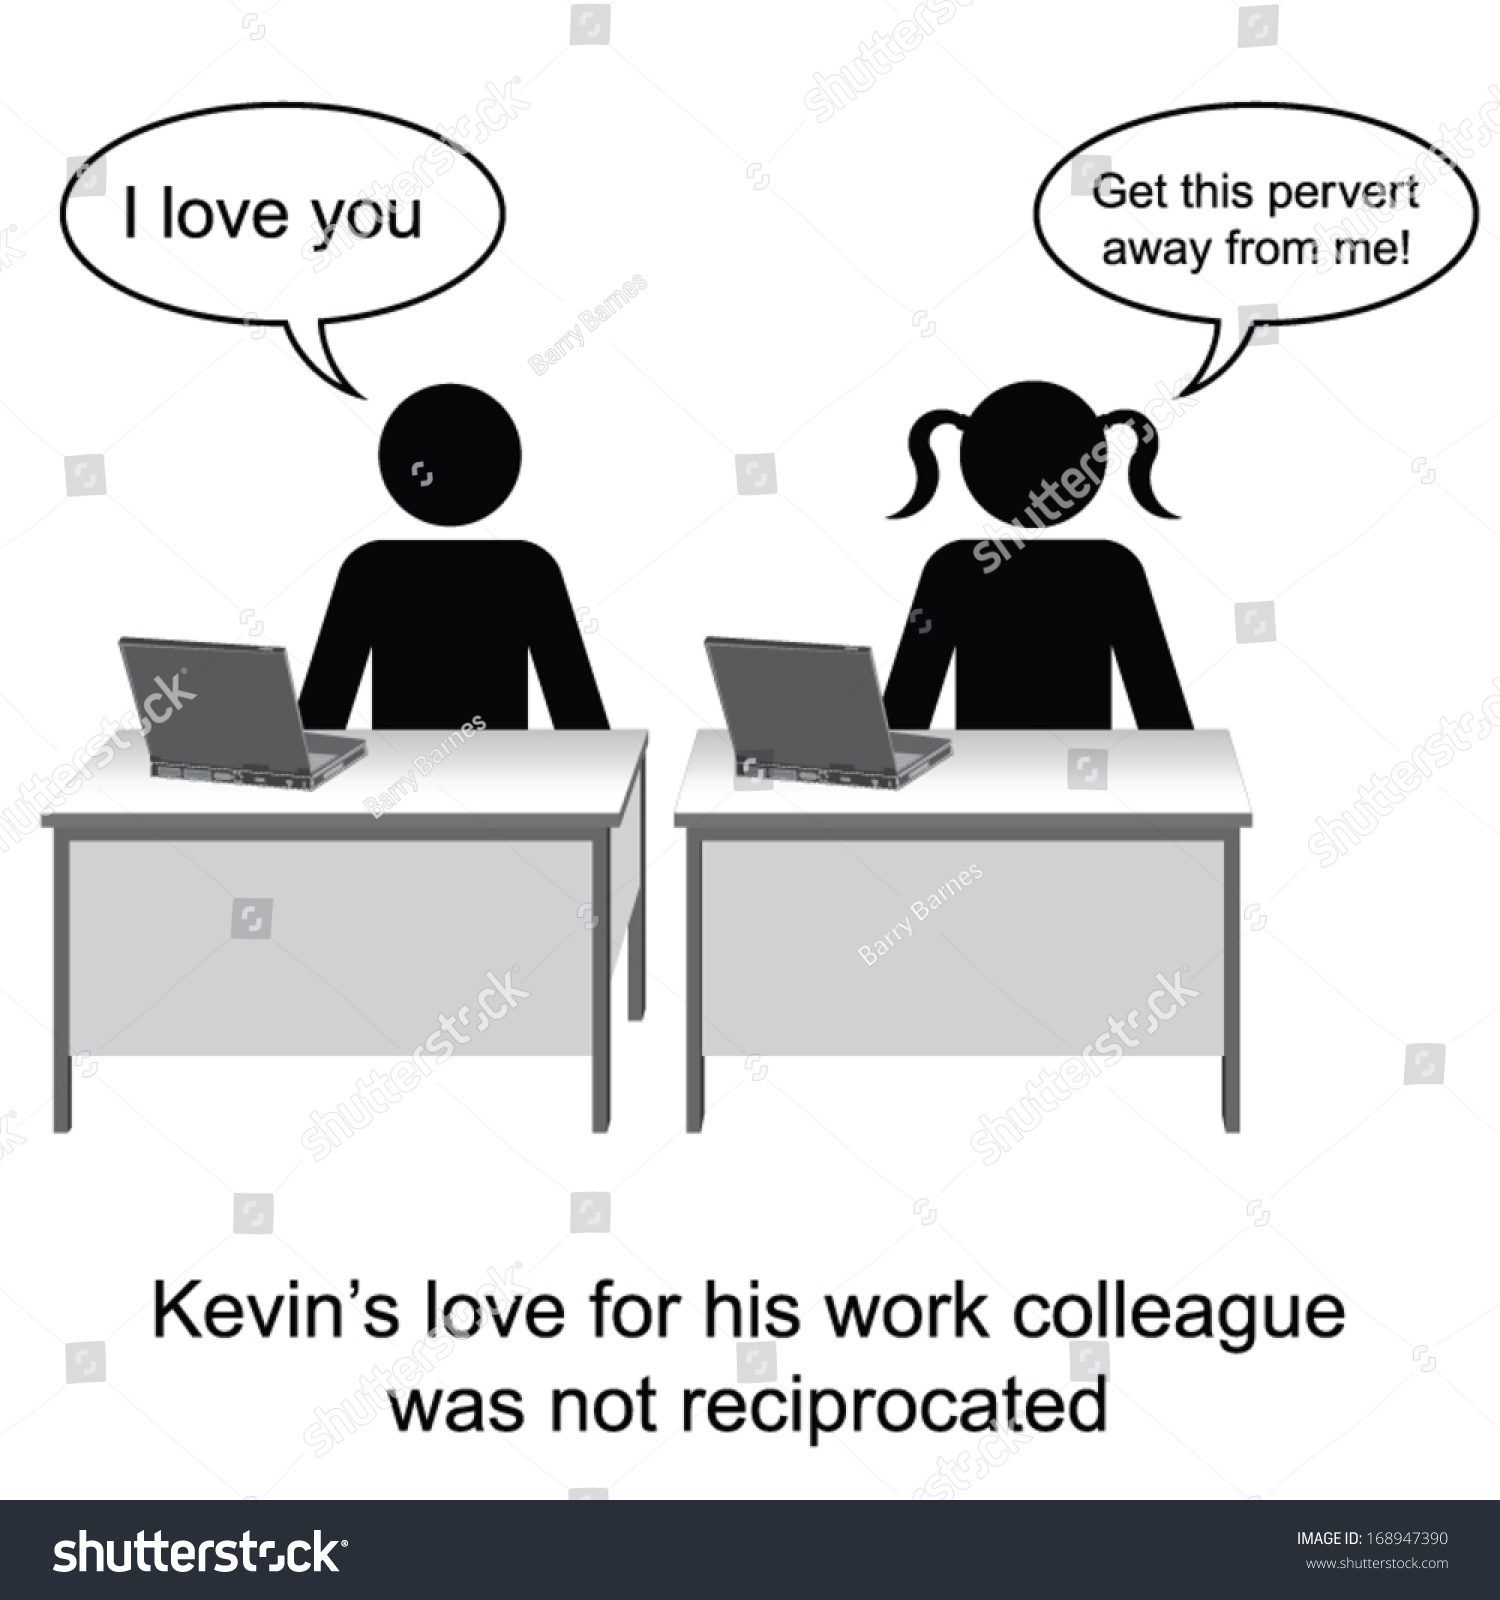 romance at work People who work together also tend to live within a reasonable dating distance, and they see each other on a daily basis so should romance be discouraged in early shrm surveys, 43 percent of hr staff said that they had experienced office romances in their workplace.